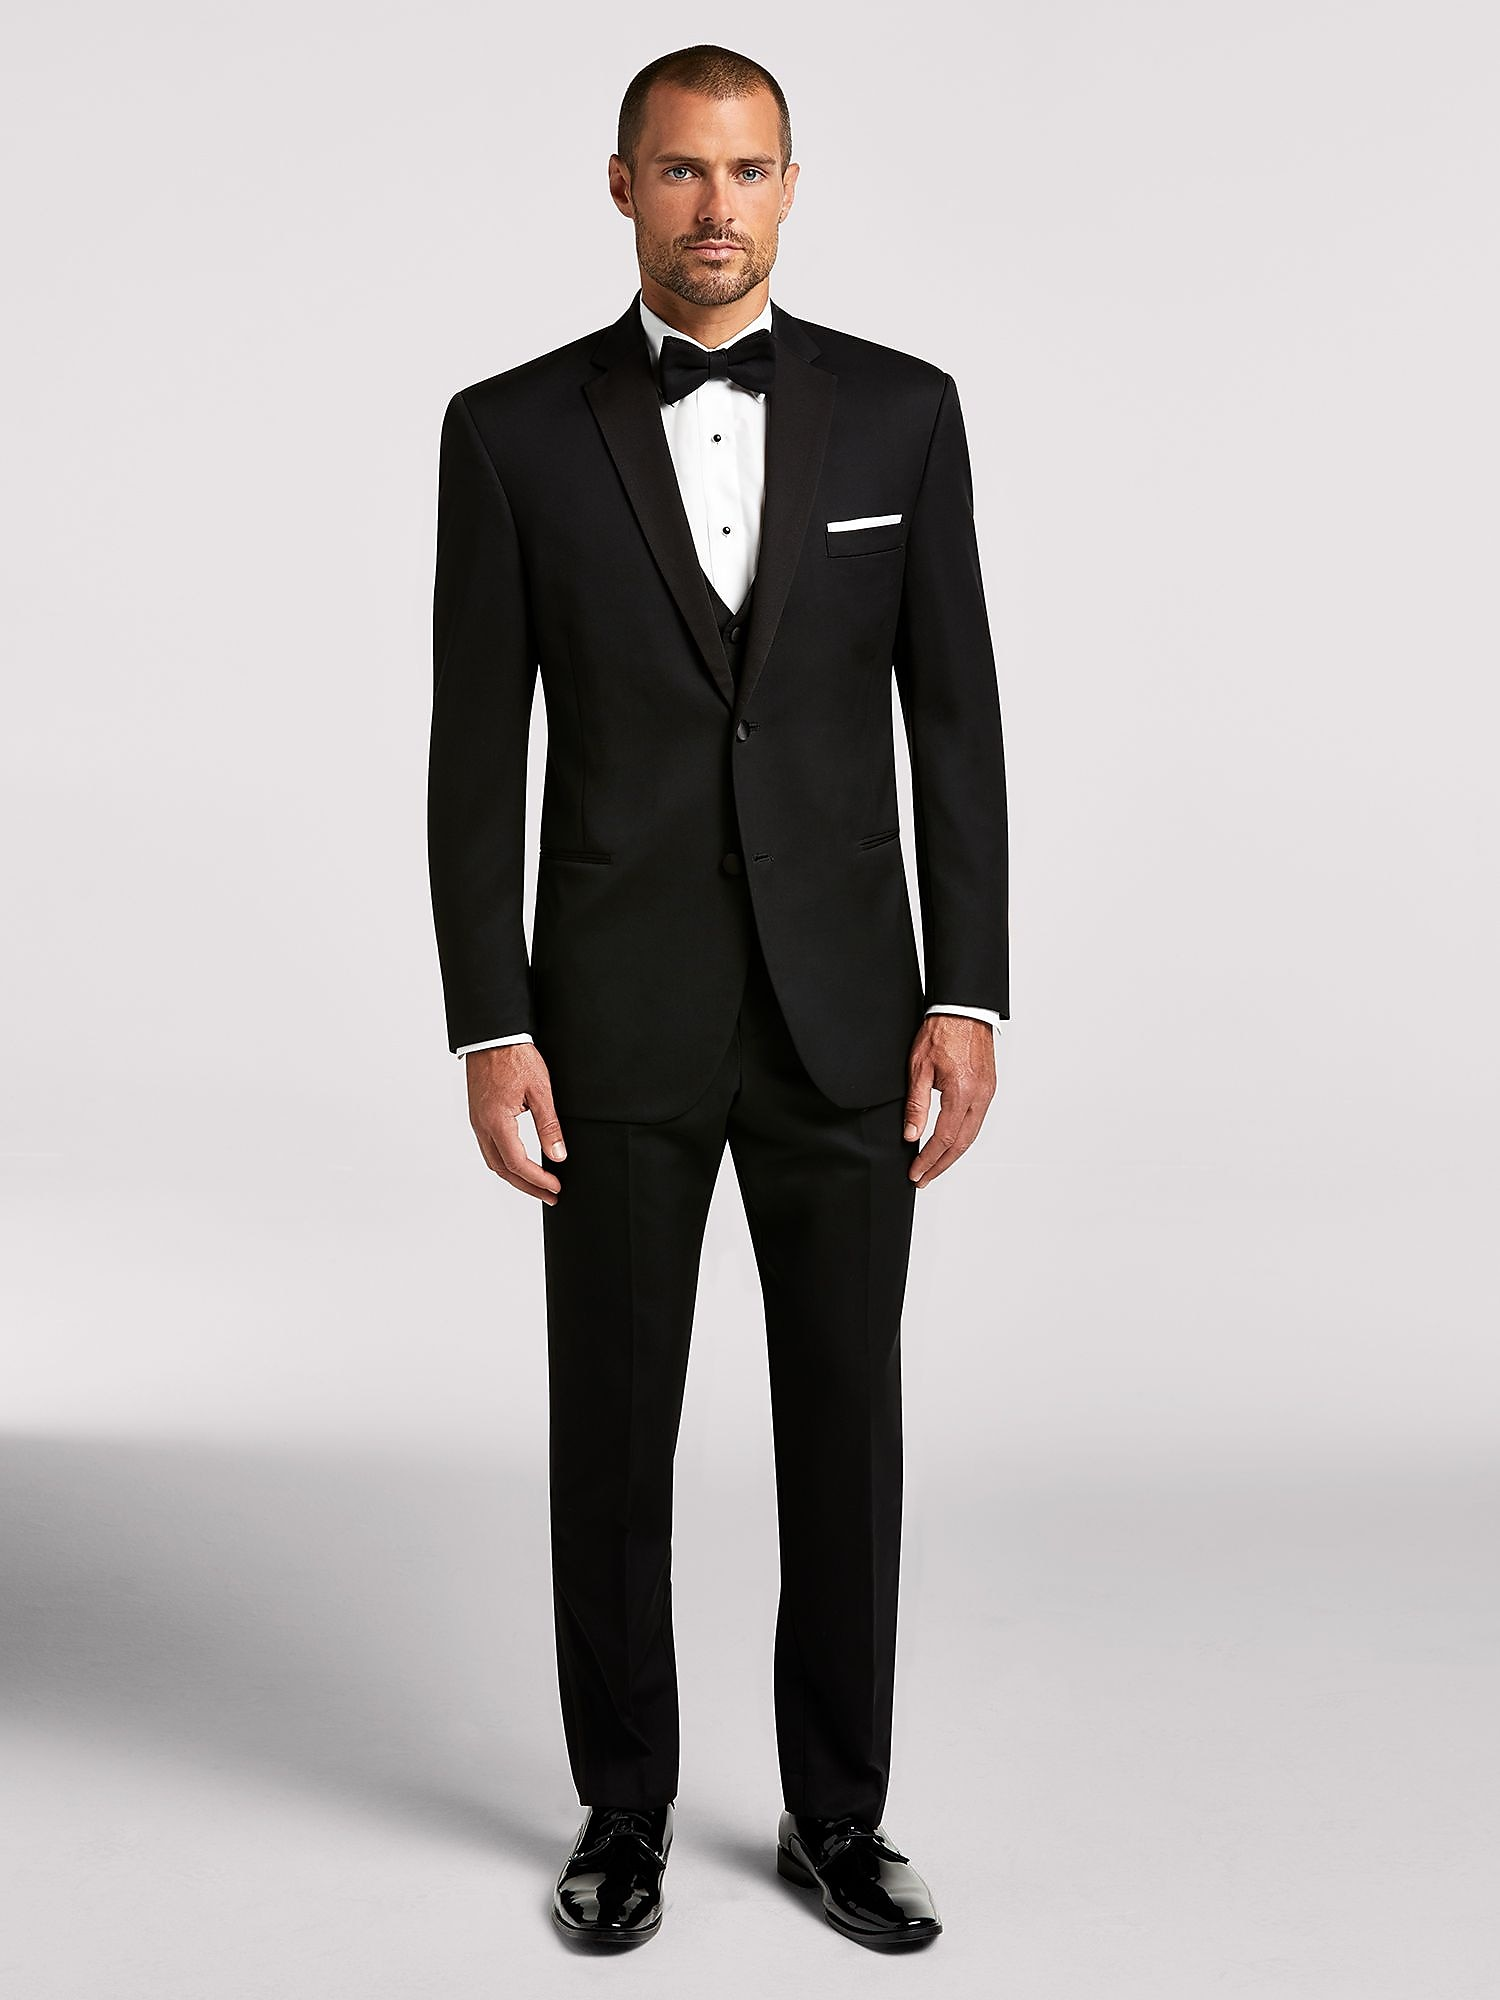 b4c2d0166901 Tuxedo Rental · TUXEDOS AND SUITS · Weddings ...